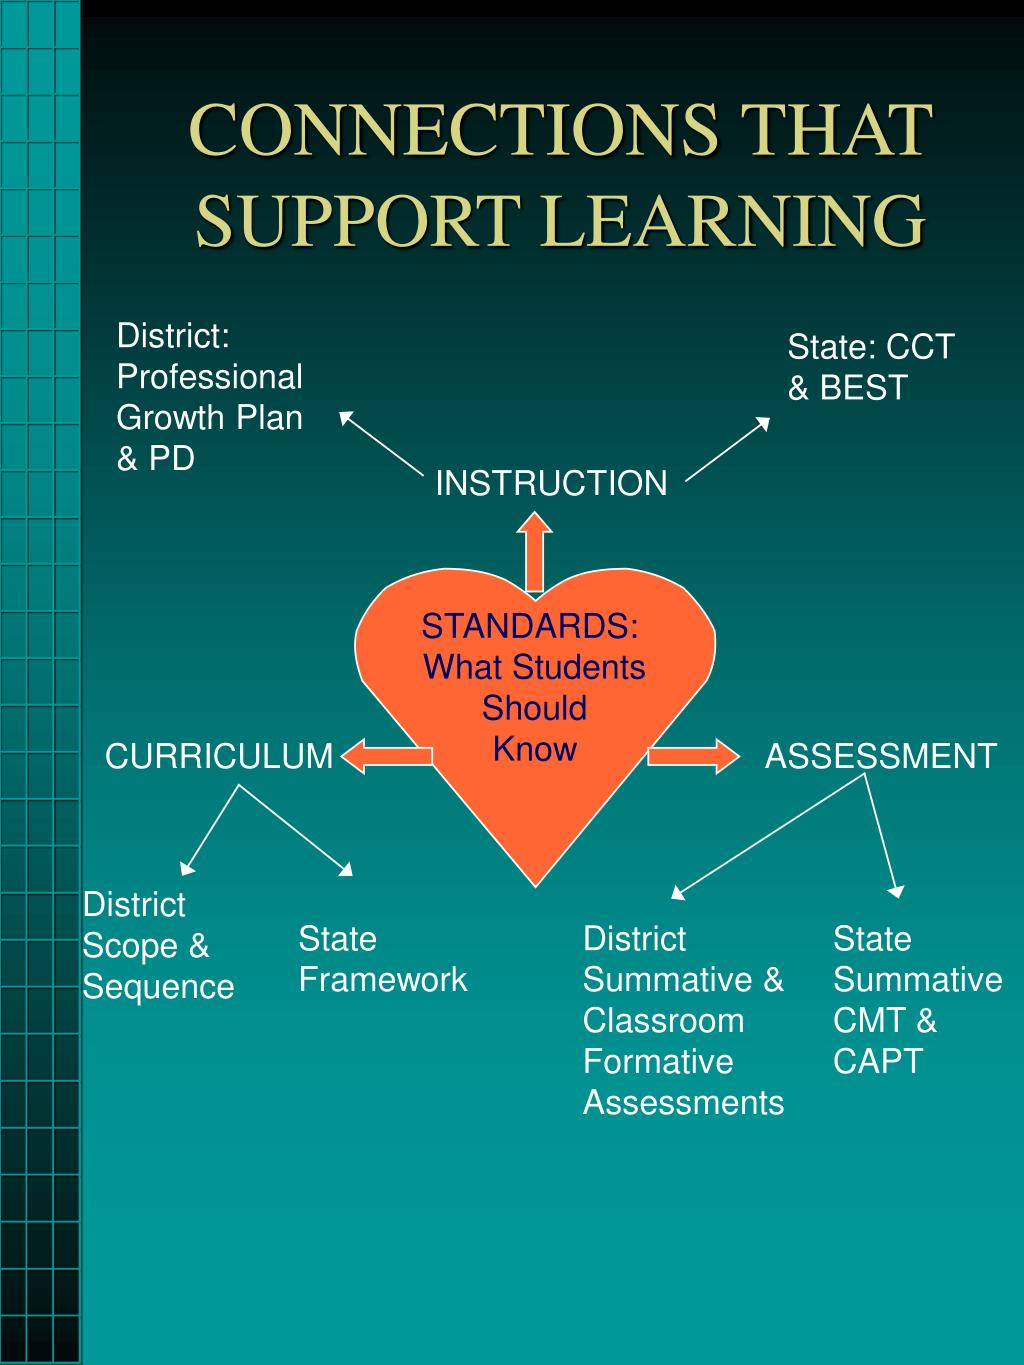 CONNECTIONS THAT SUPPORT LEARNING